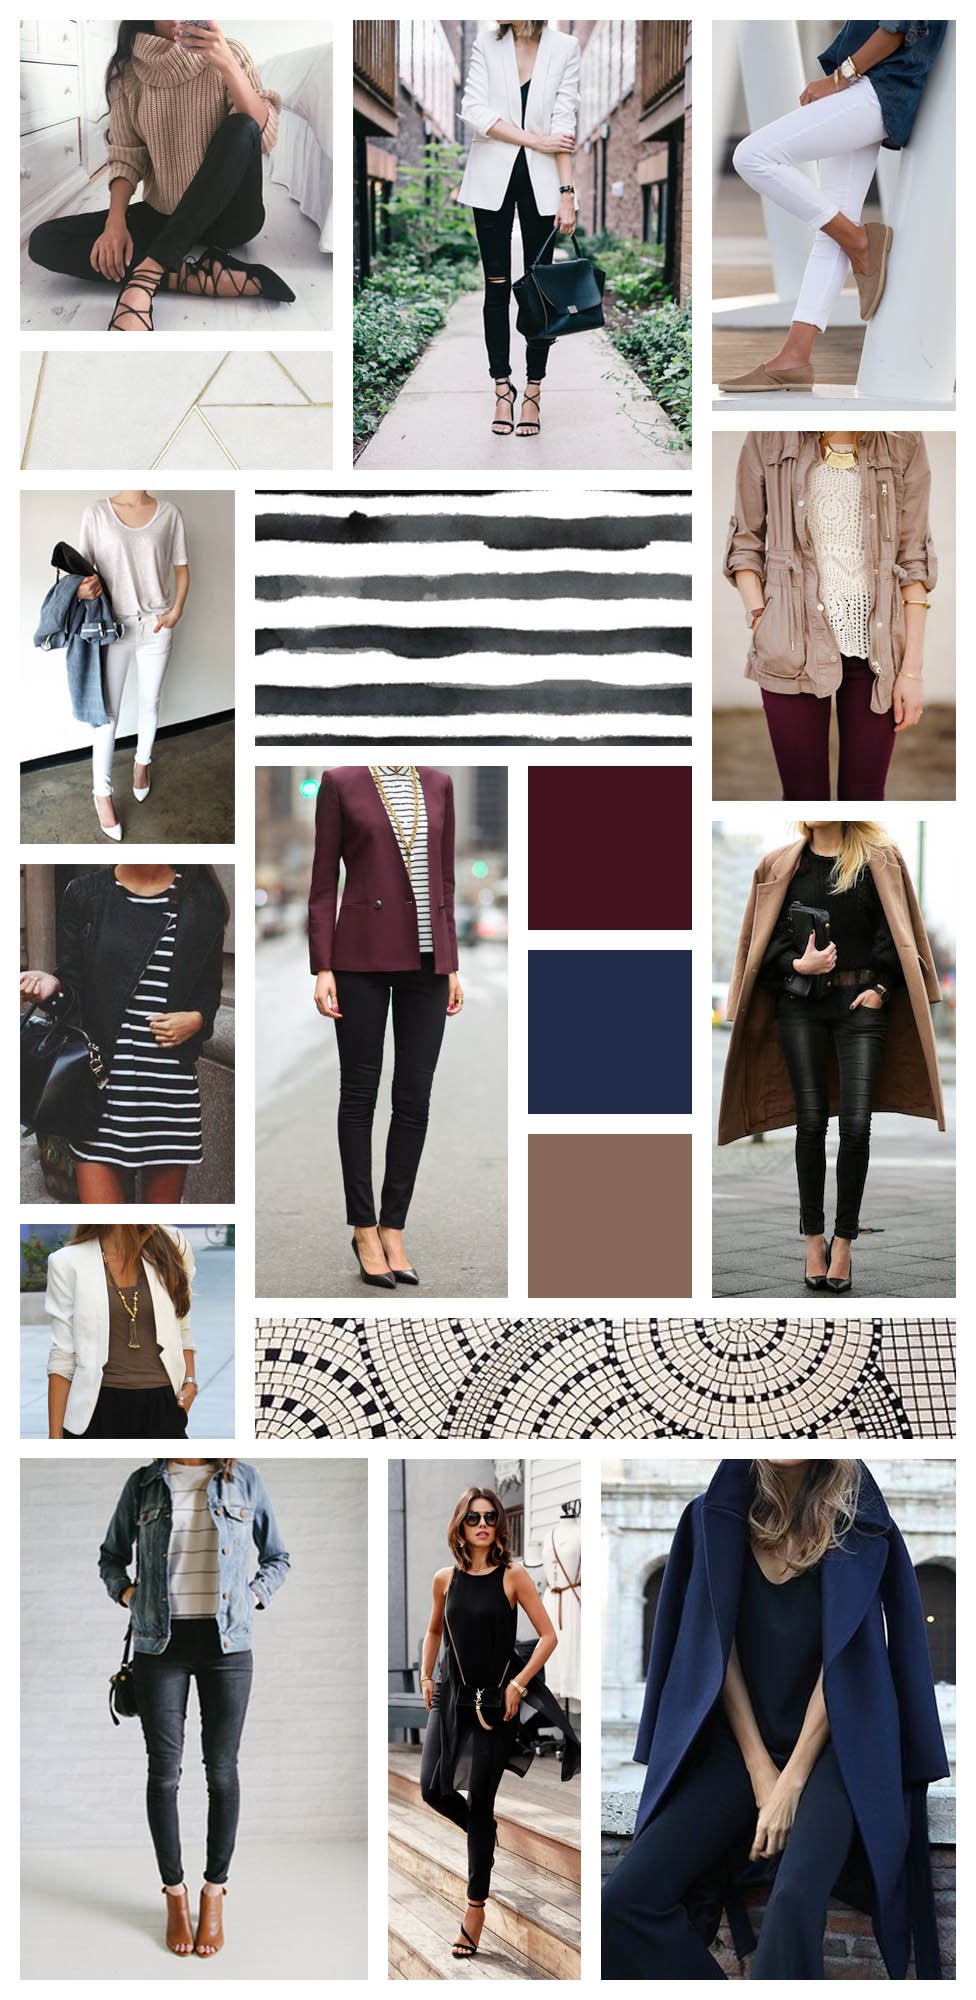 Inspiration for my personal style to bring focus to my capsule wardrobe. - Read more at Cat On The Moon (www.catonthemoon.xyz)